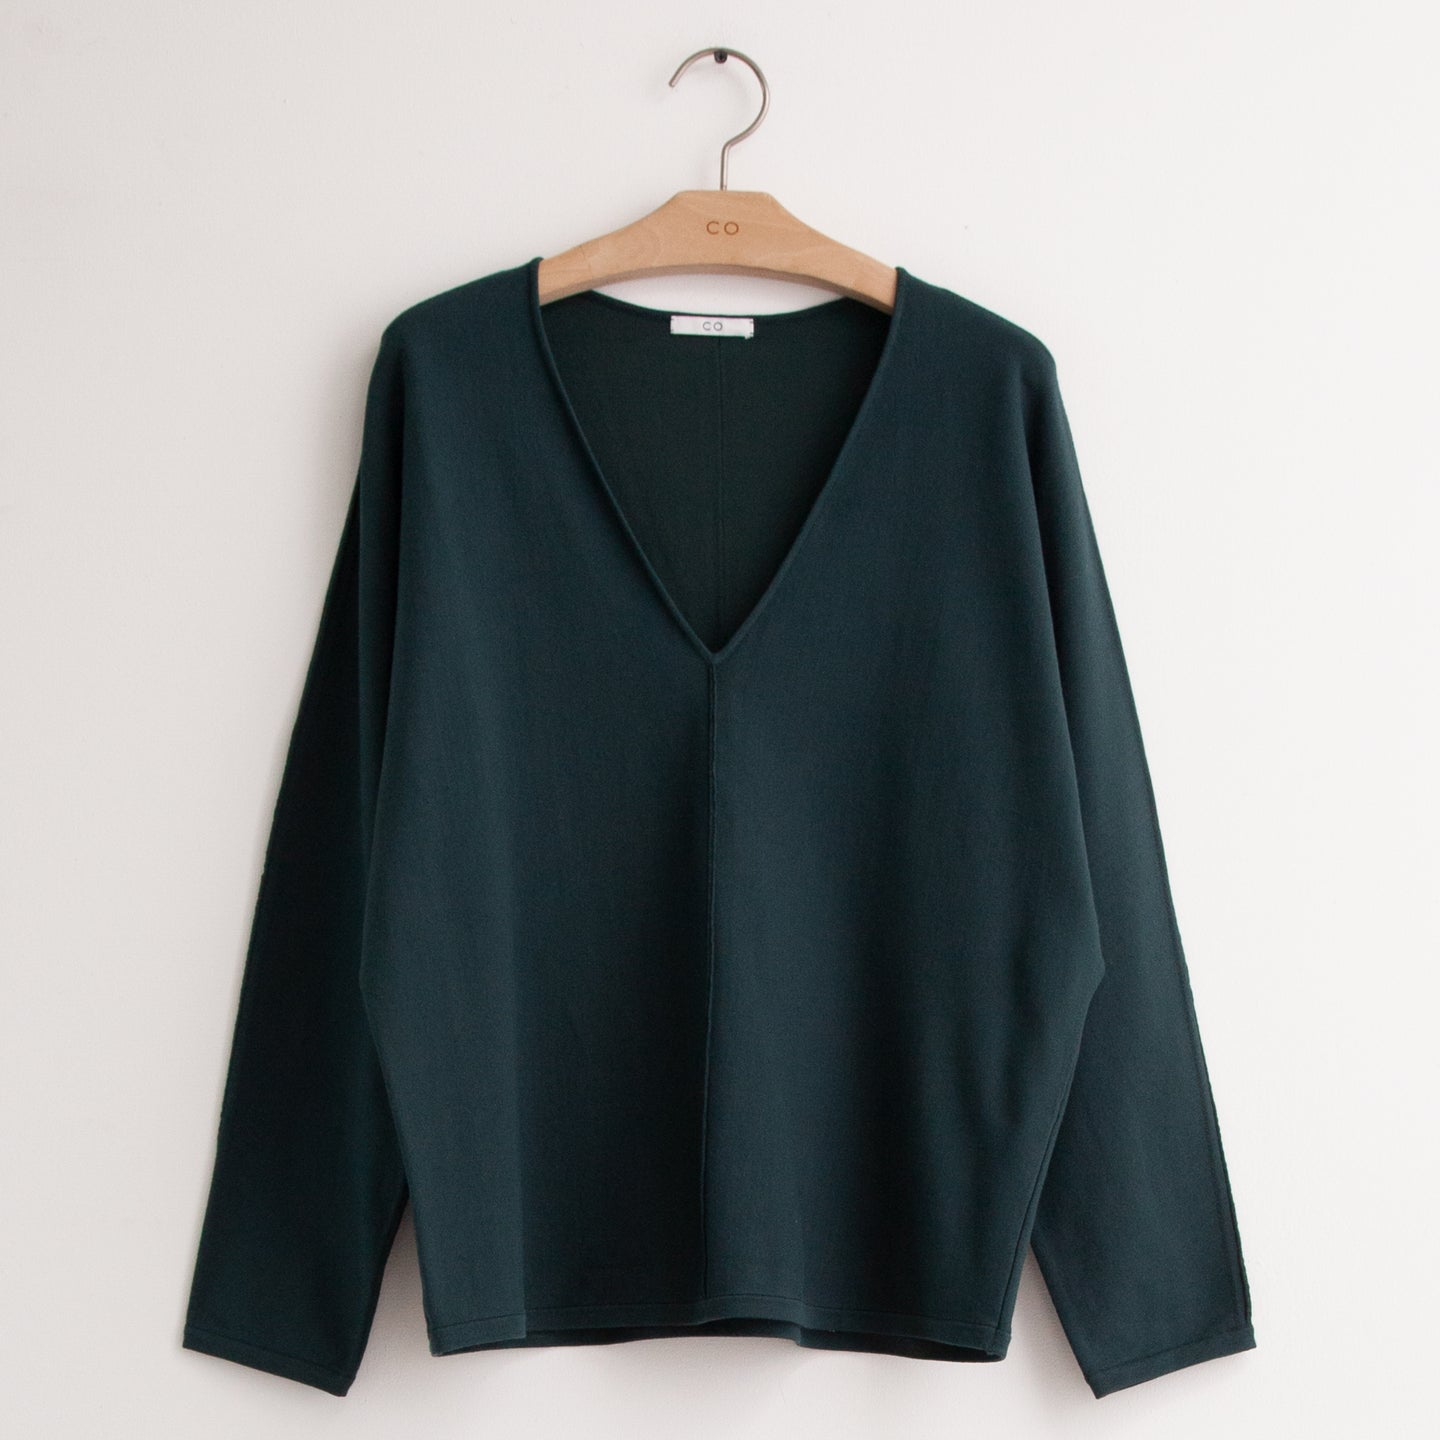 CO - V neck knit with front seam detail in teal compact viscose